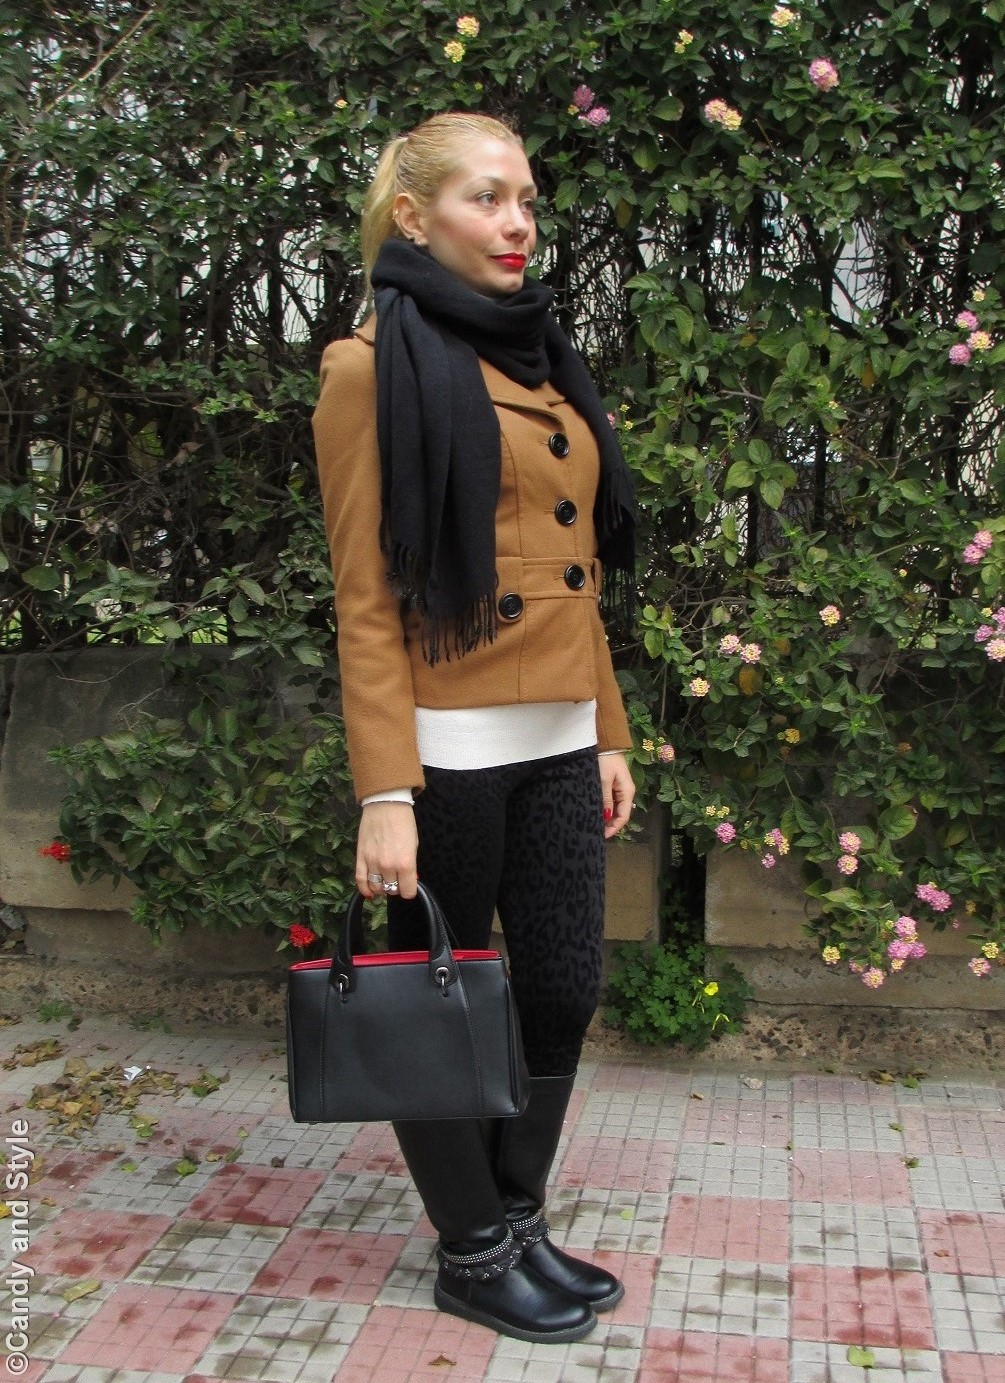 Camel, Black, Tote - Lilli Candy and Style Fashion Blog